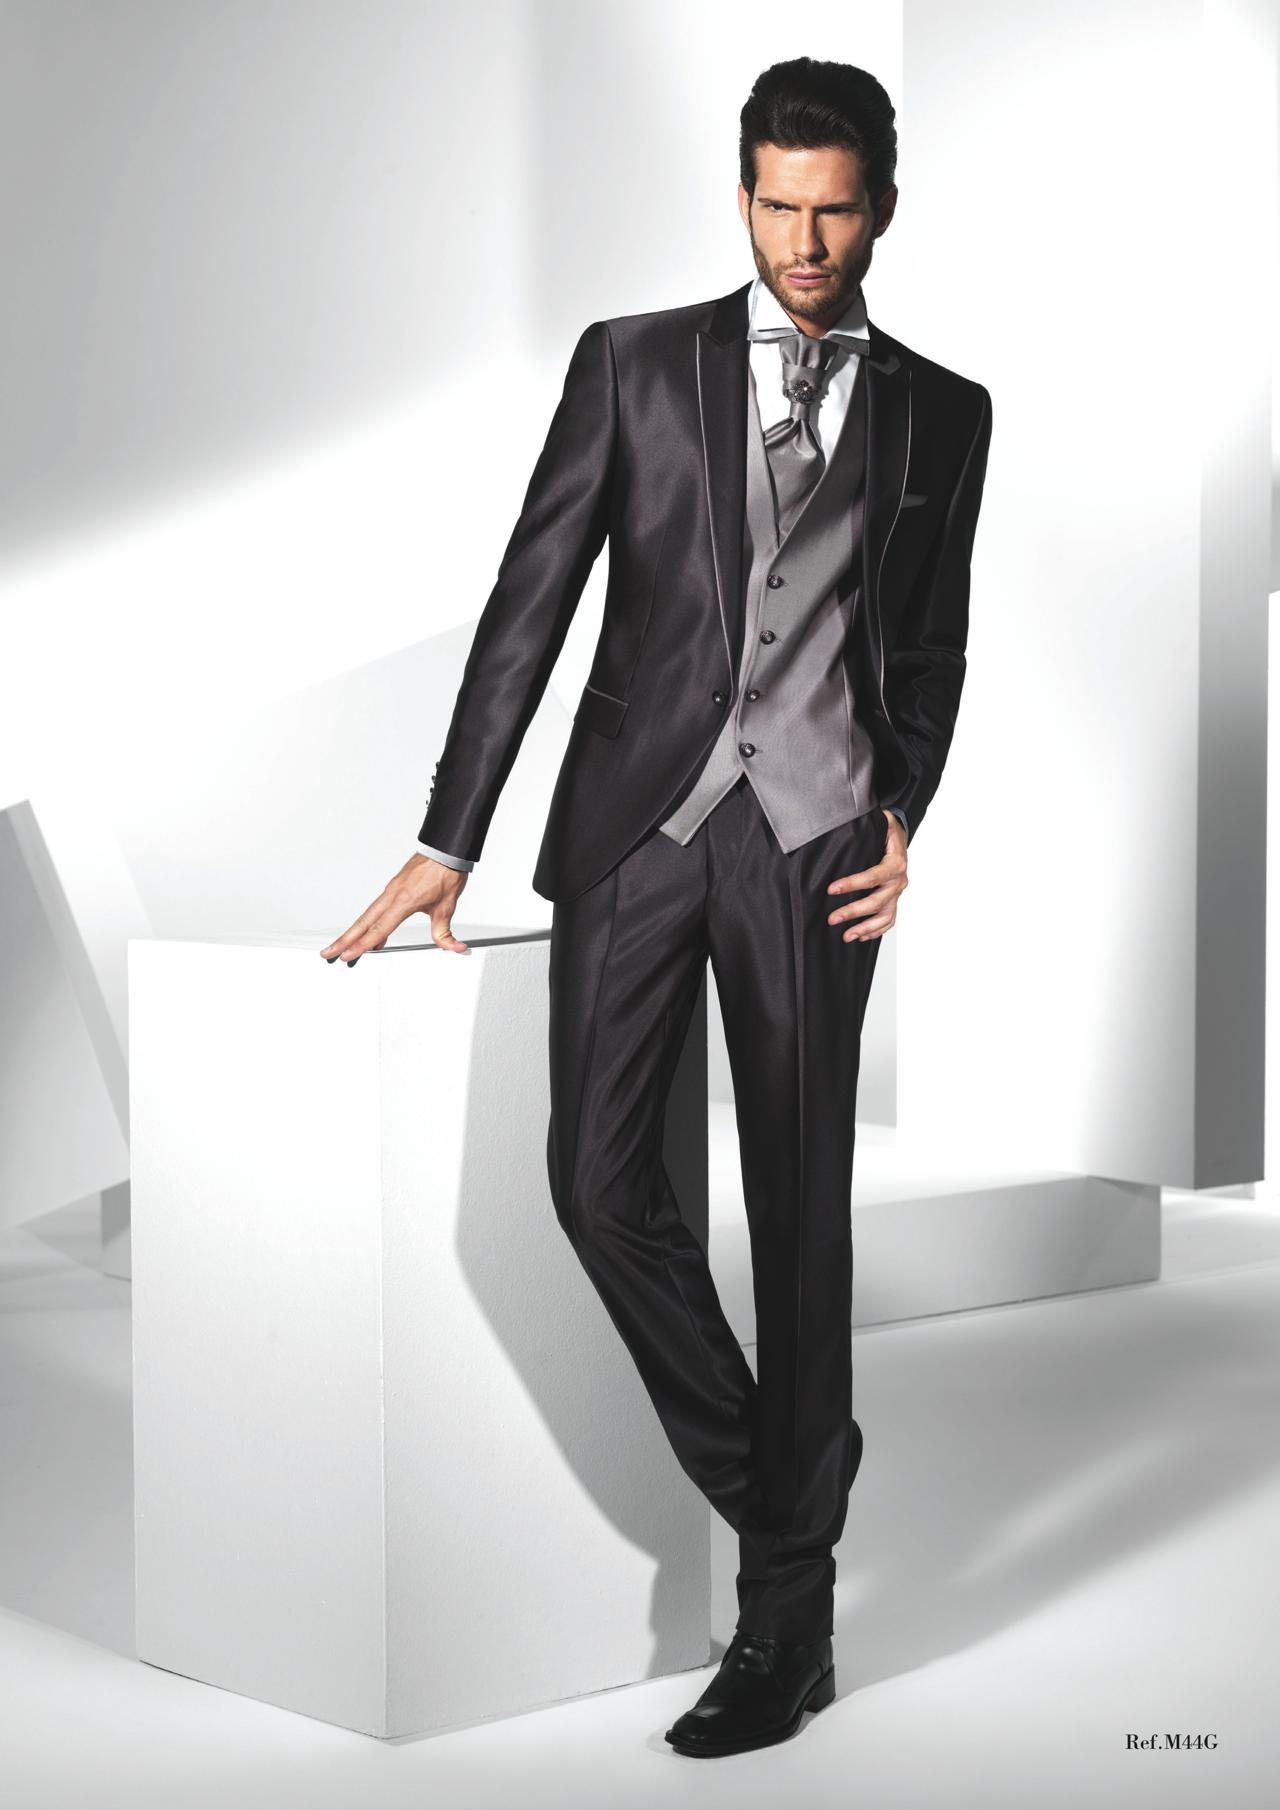 Wedding Mens Wedding Tuxedos dark grey suit mens wedding suits 2015 peaked lapel tuxedos one button groom suits